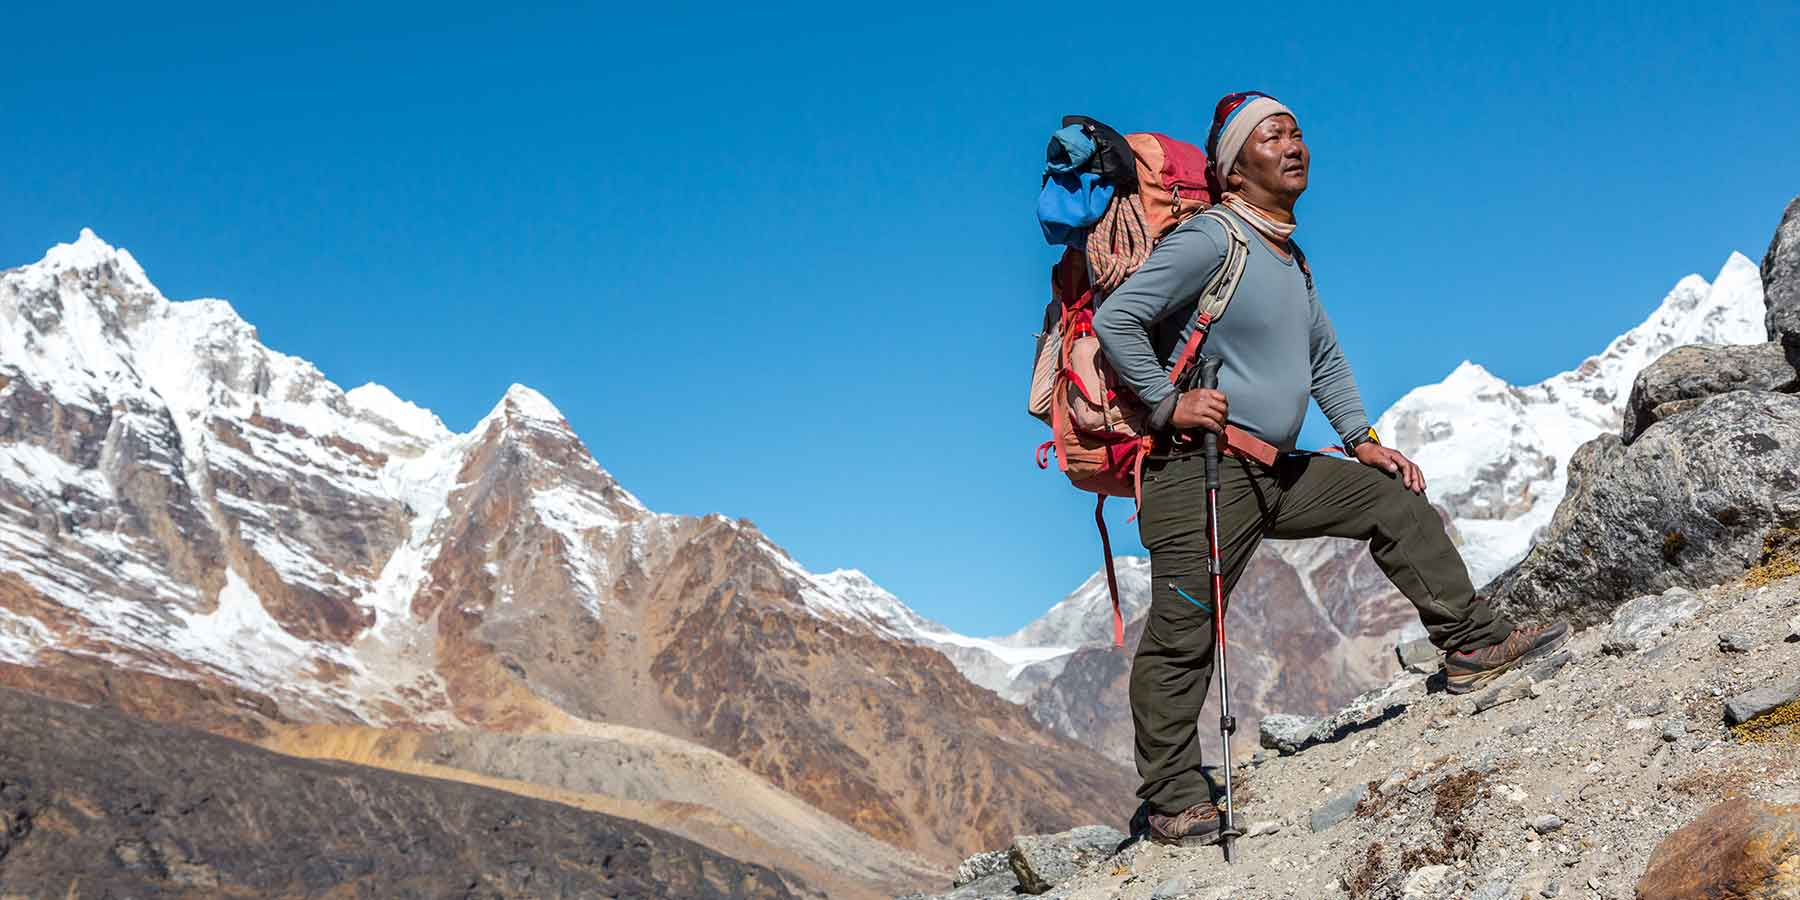 Life lession form sherpas, Himalayas sherpas, mountain sherpas, everest sherpas, physical strength, psychological strength, Leadership lession from sherpas,